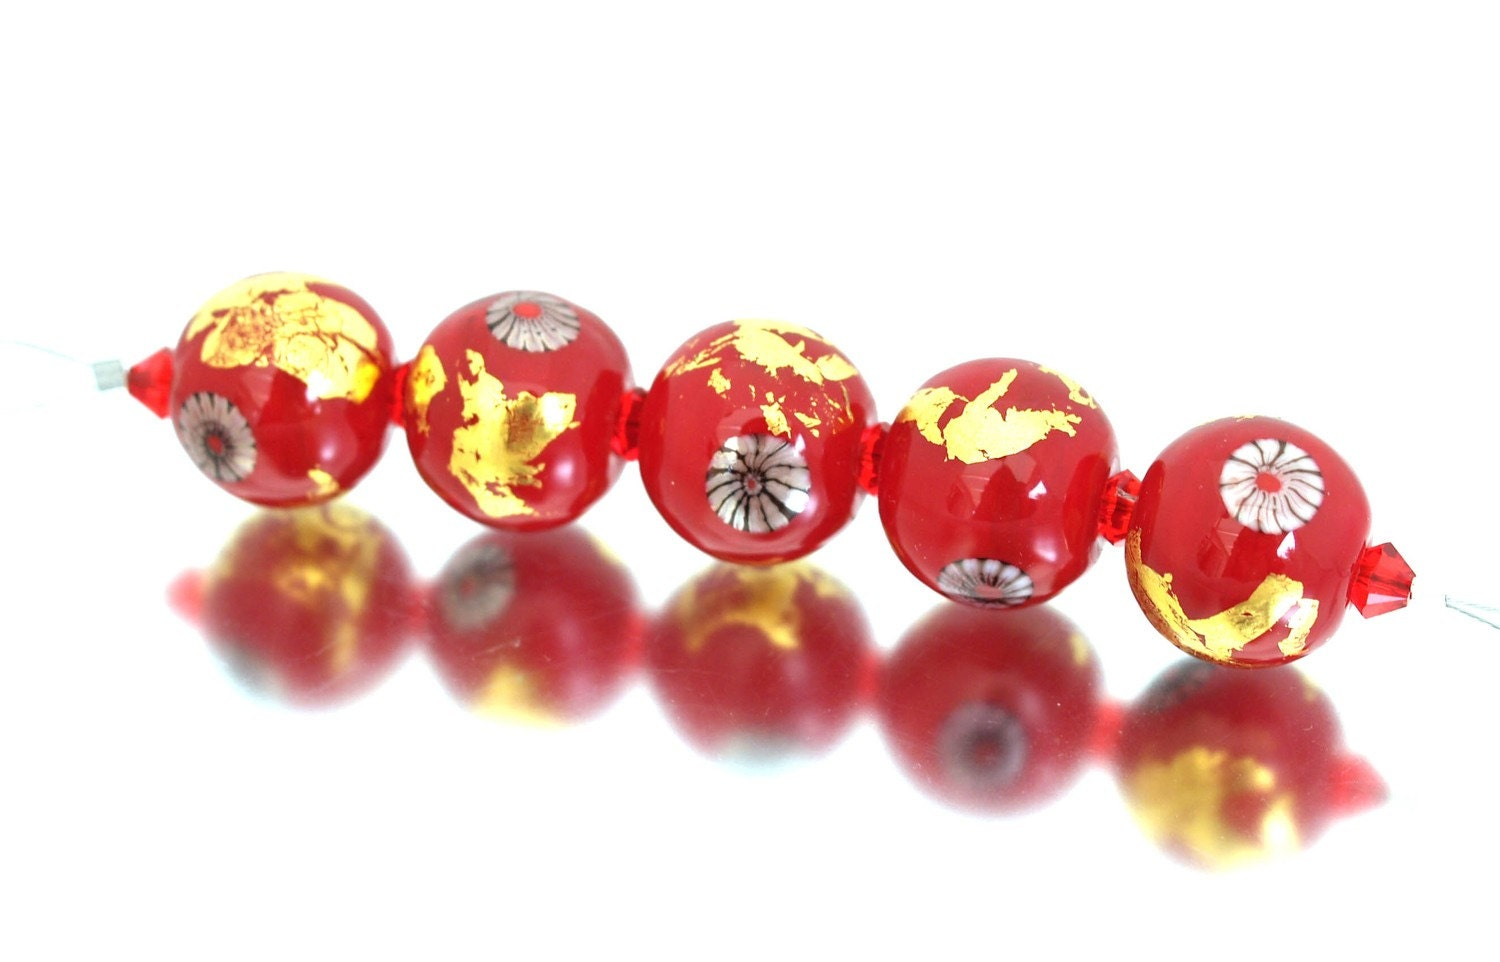 A set of five handmade glass beads in a beautiful scarlet red decorated with gold foil and murrini in black, white and red. This opulent set has an oriental look and would make a stunning piece of jewellery.